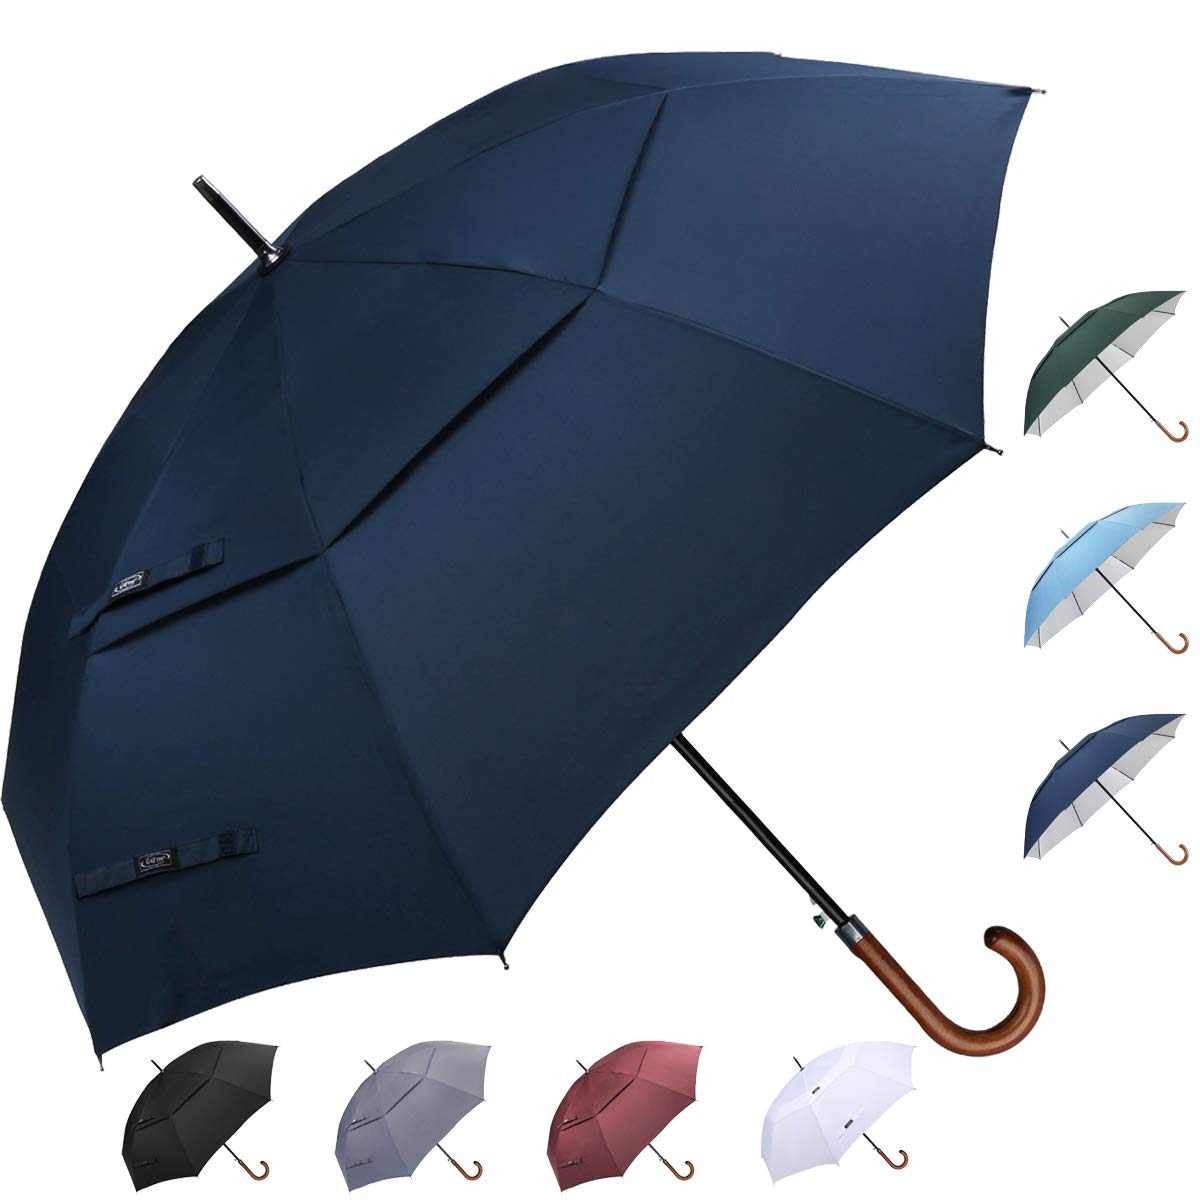 G4Free Wooden Hook Handle Classic Golf Umbrella Windproof Auto Open 62 inch Large Oversized Double Canopy Vented Rainproof Cane Stick Umbrellas Men Women(Blue) by G4Free